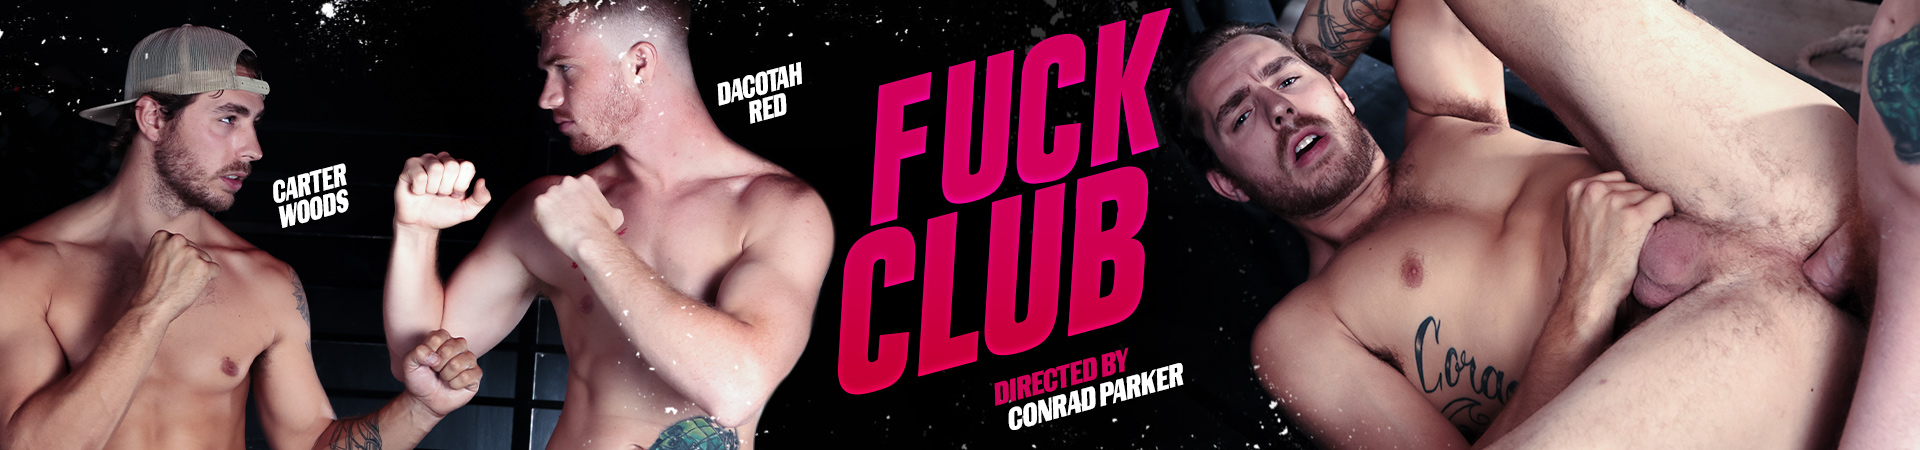 Fuck Club Featuring Carter Woods and Dacotah Red